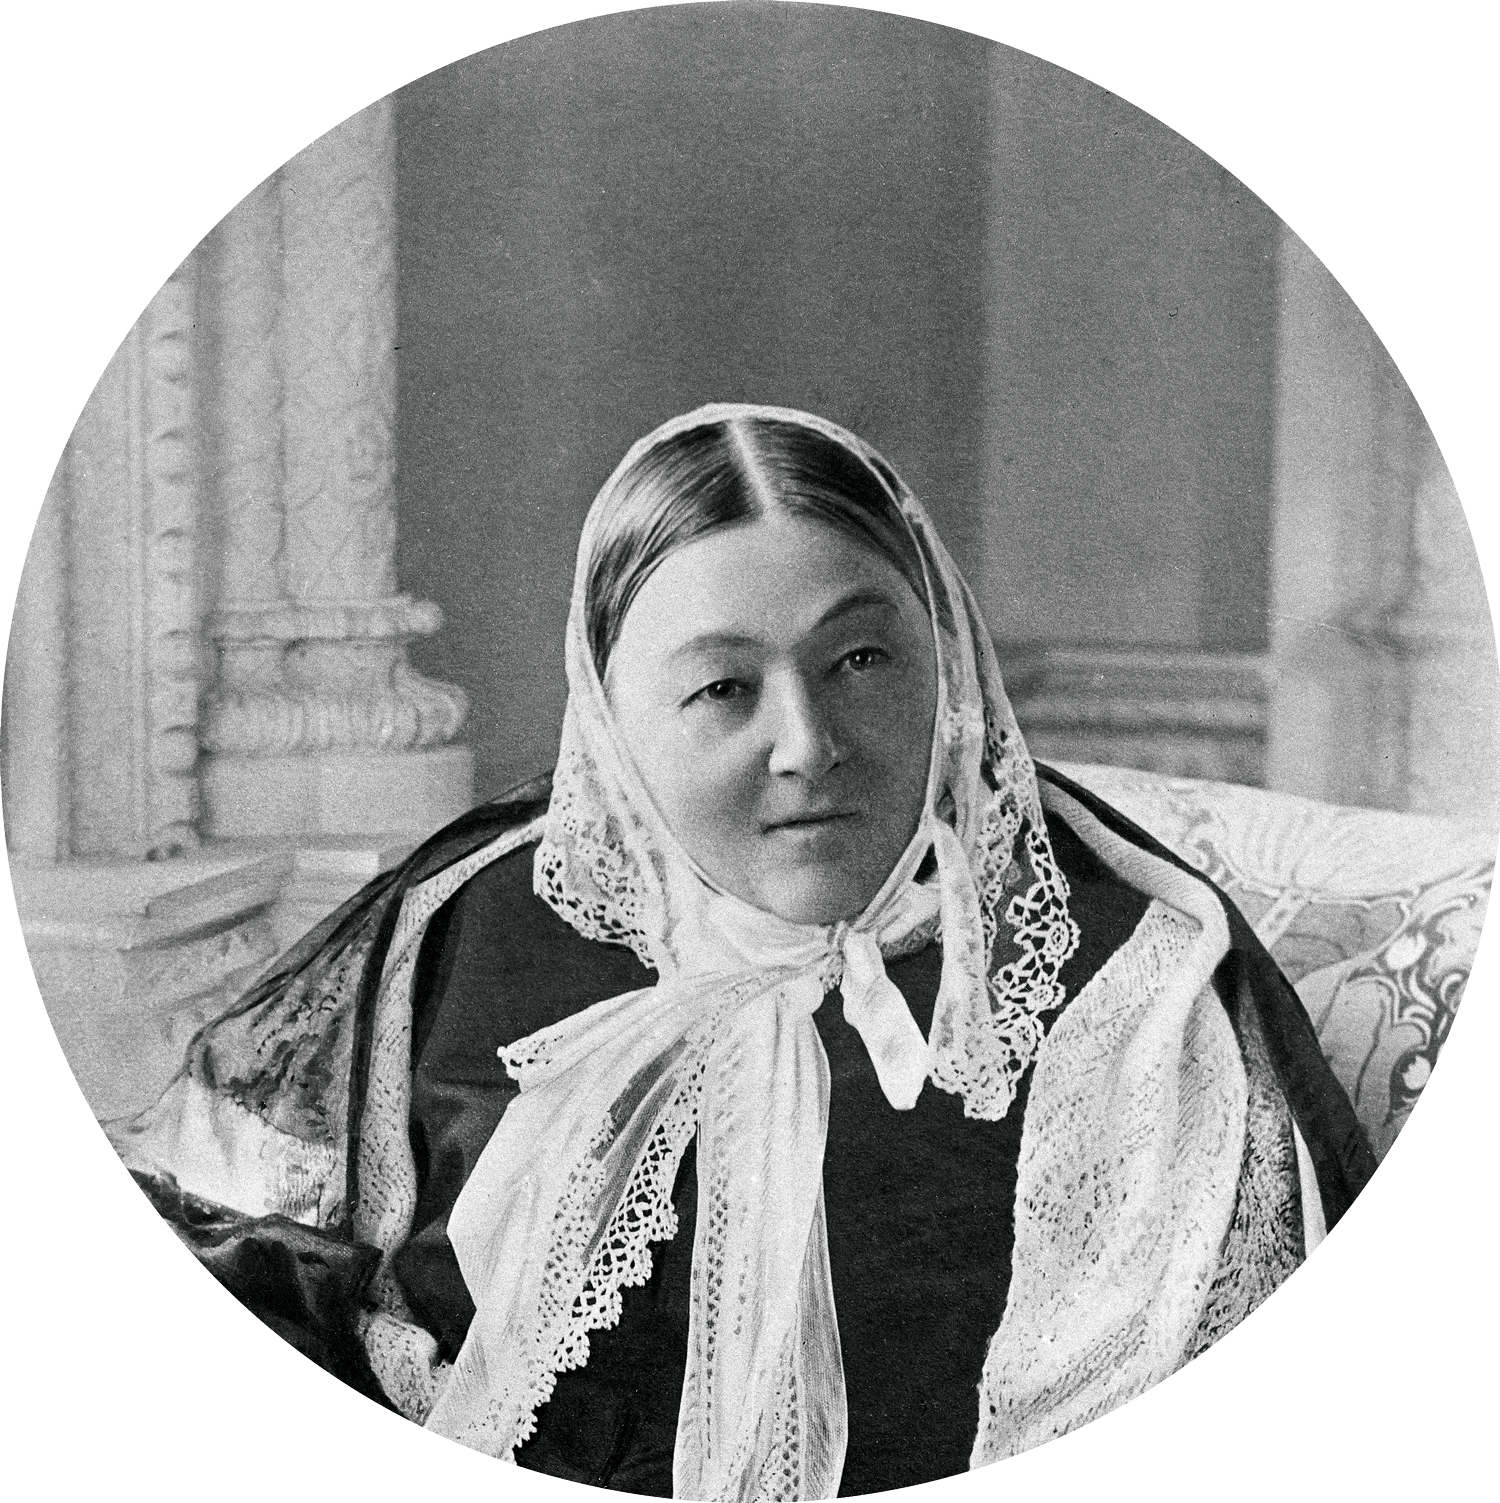 Histoire des maths - Florence Nightingale